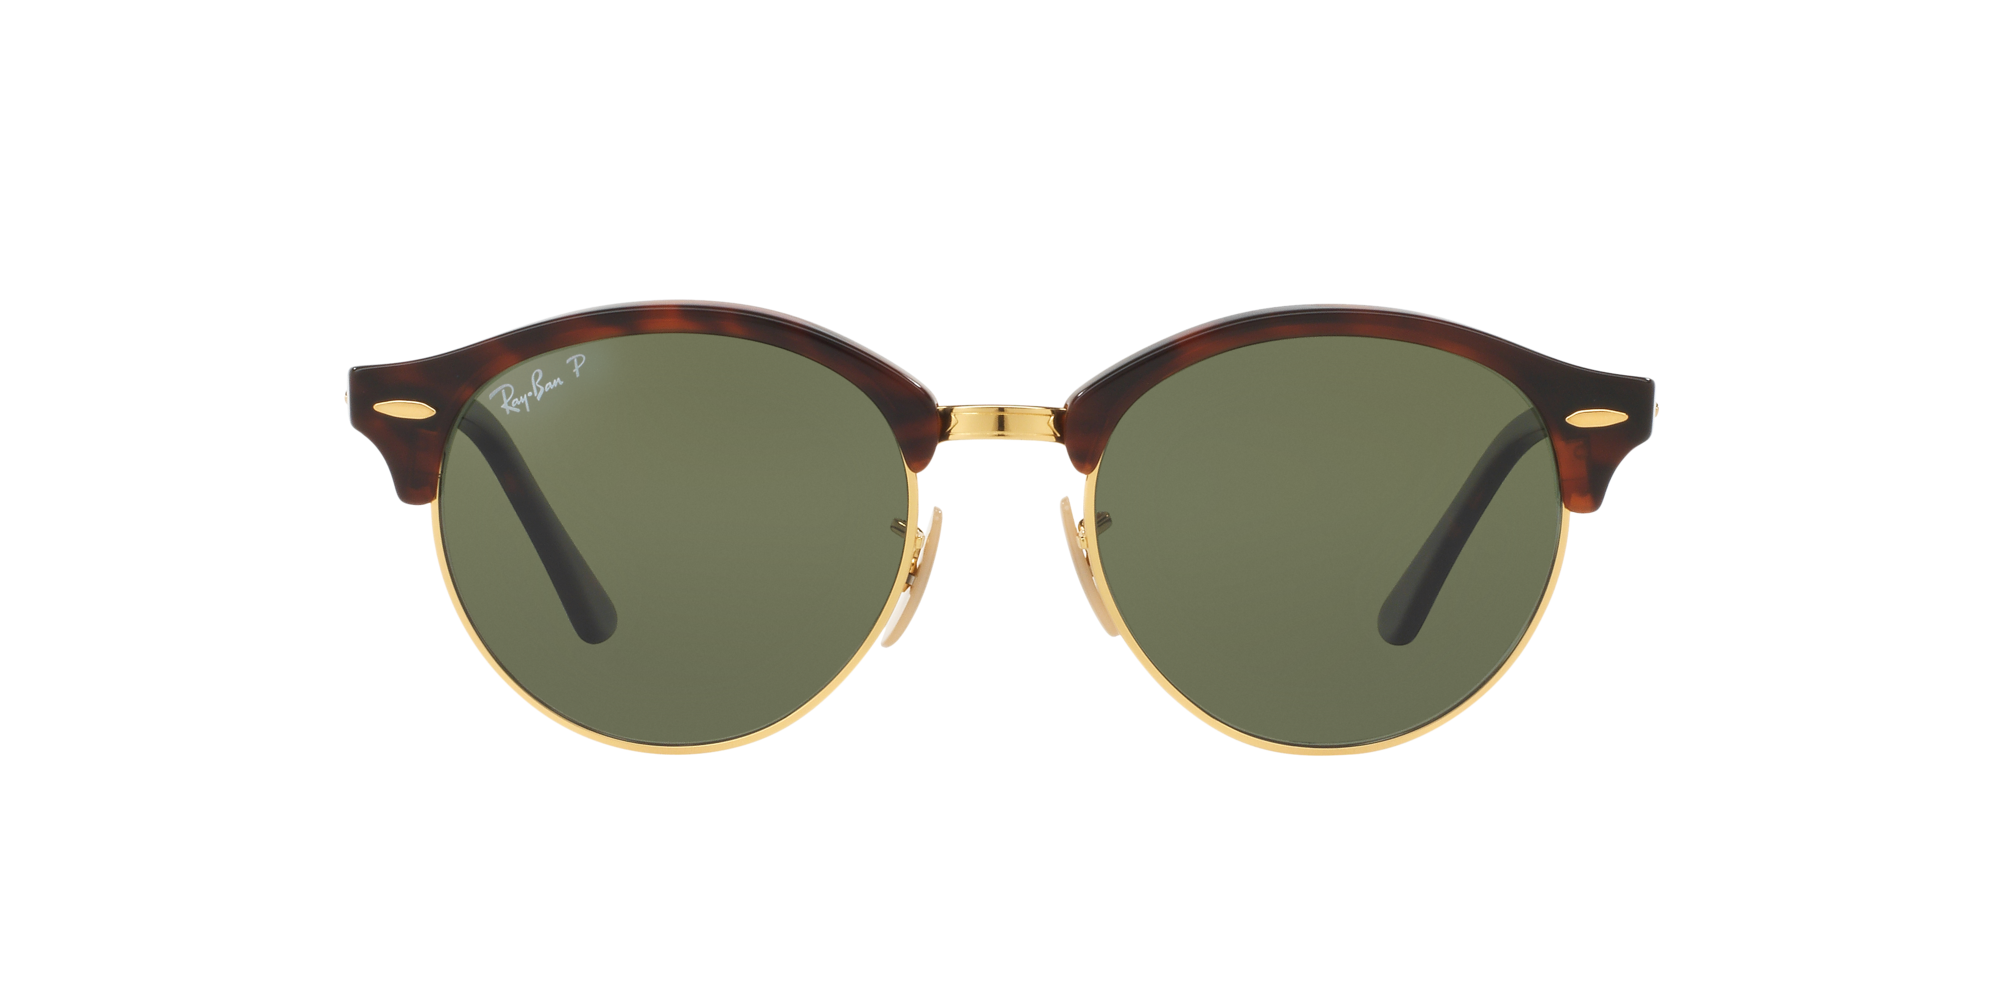 RAY-BAN CLUBROUND RB 4246 990/58 POLARIZADAS-360